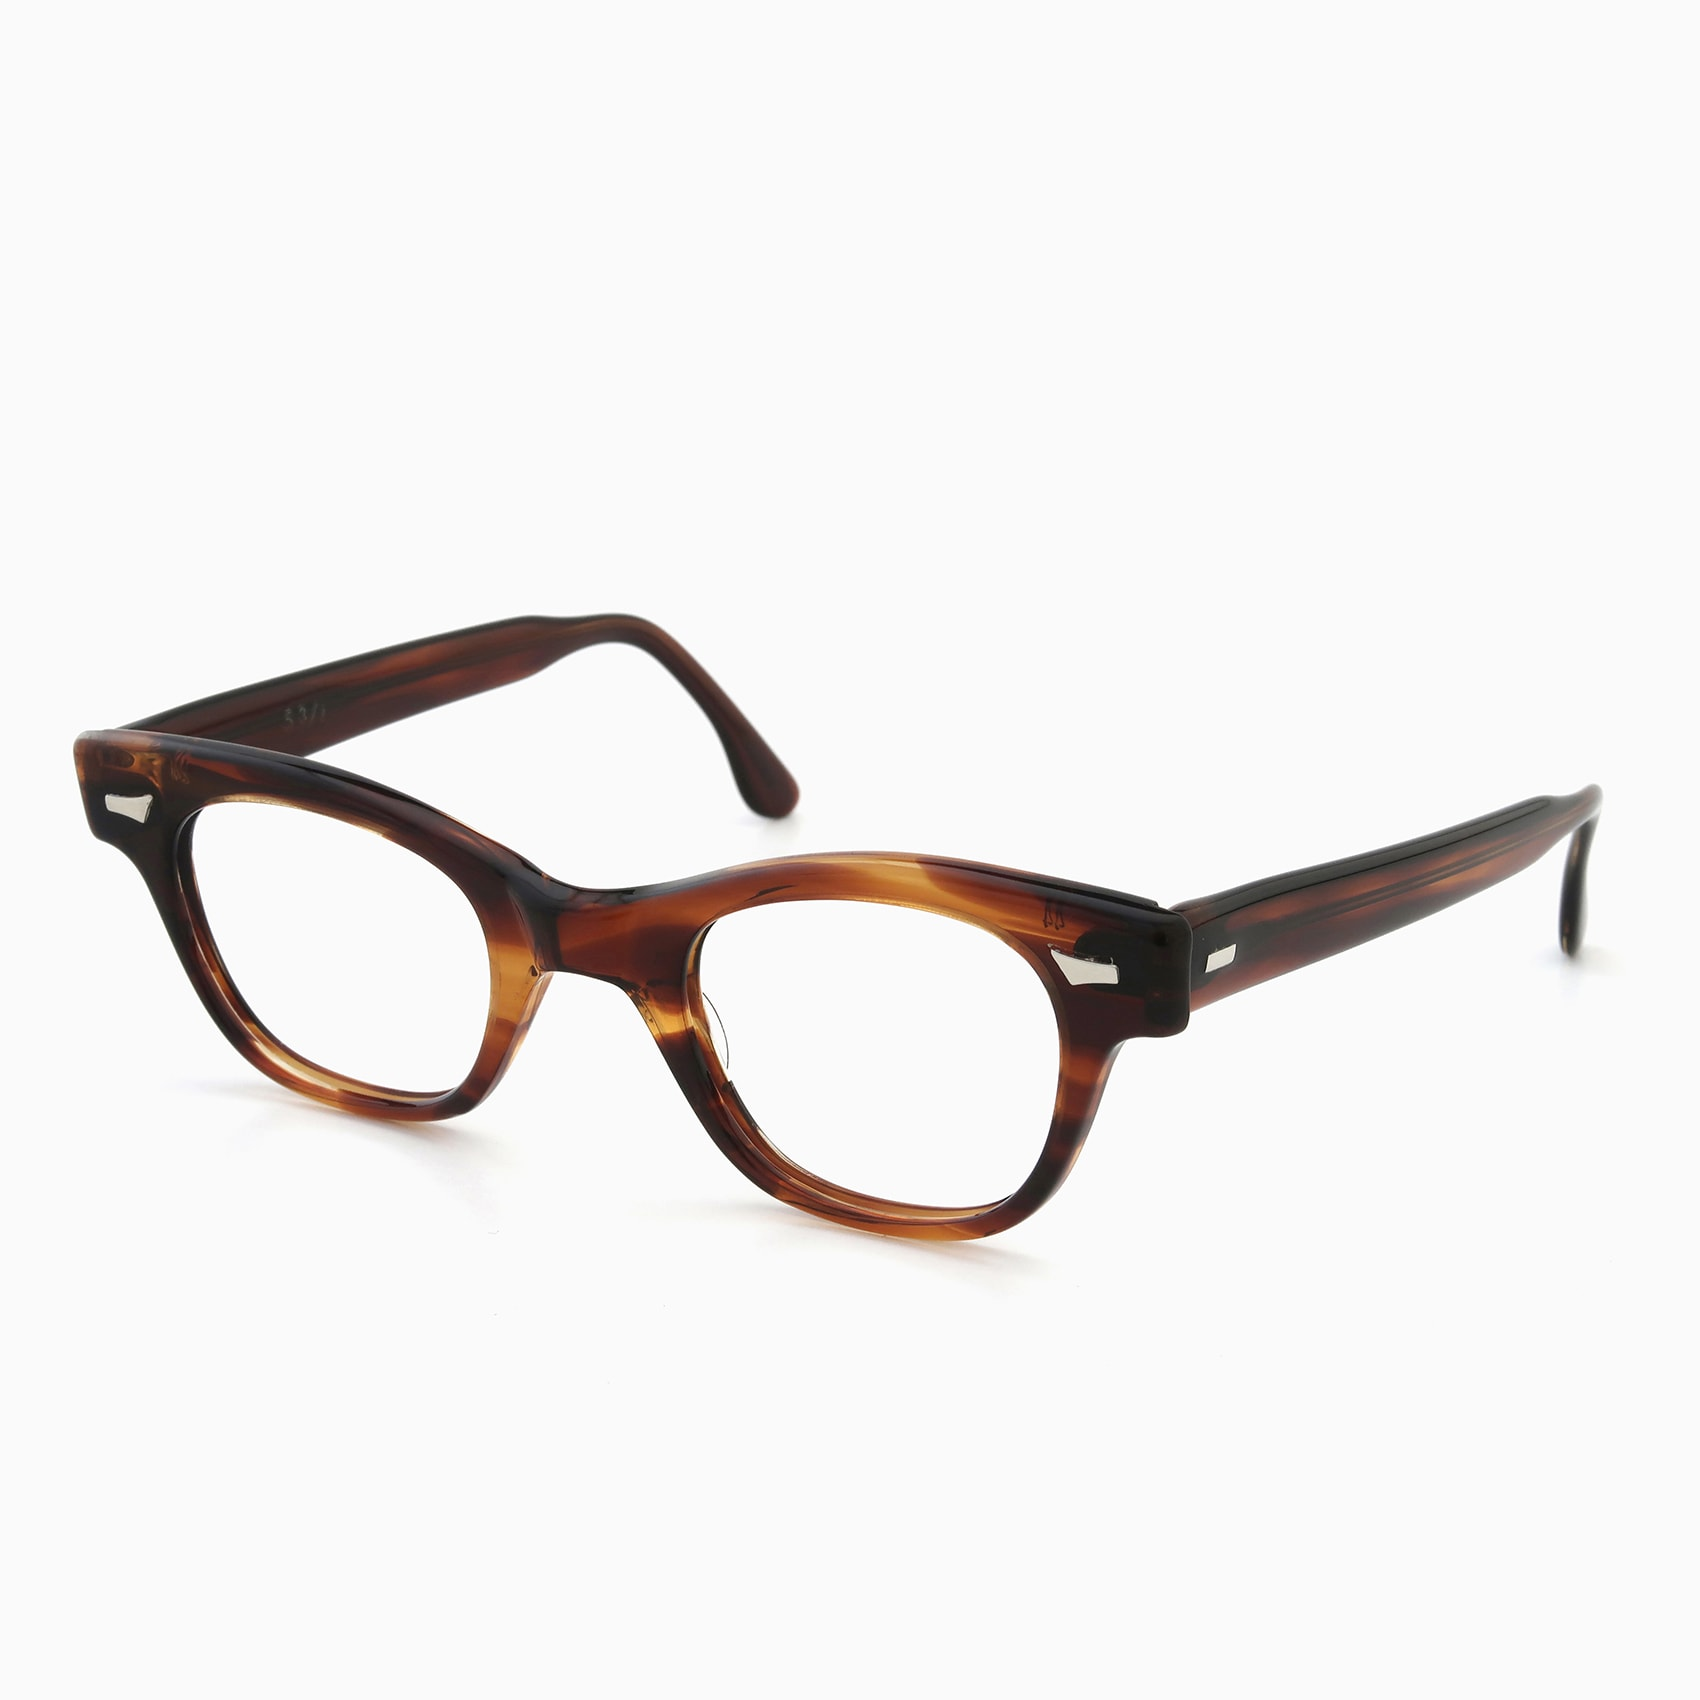 Tart-OPTICAL-vintage_COUNTDOWN_AMBER_AX_44-24_V5_4